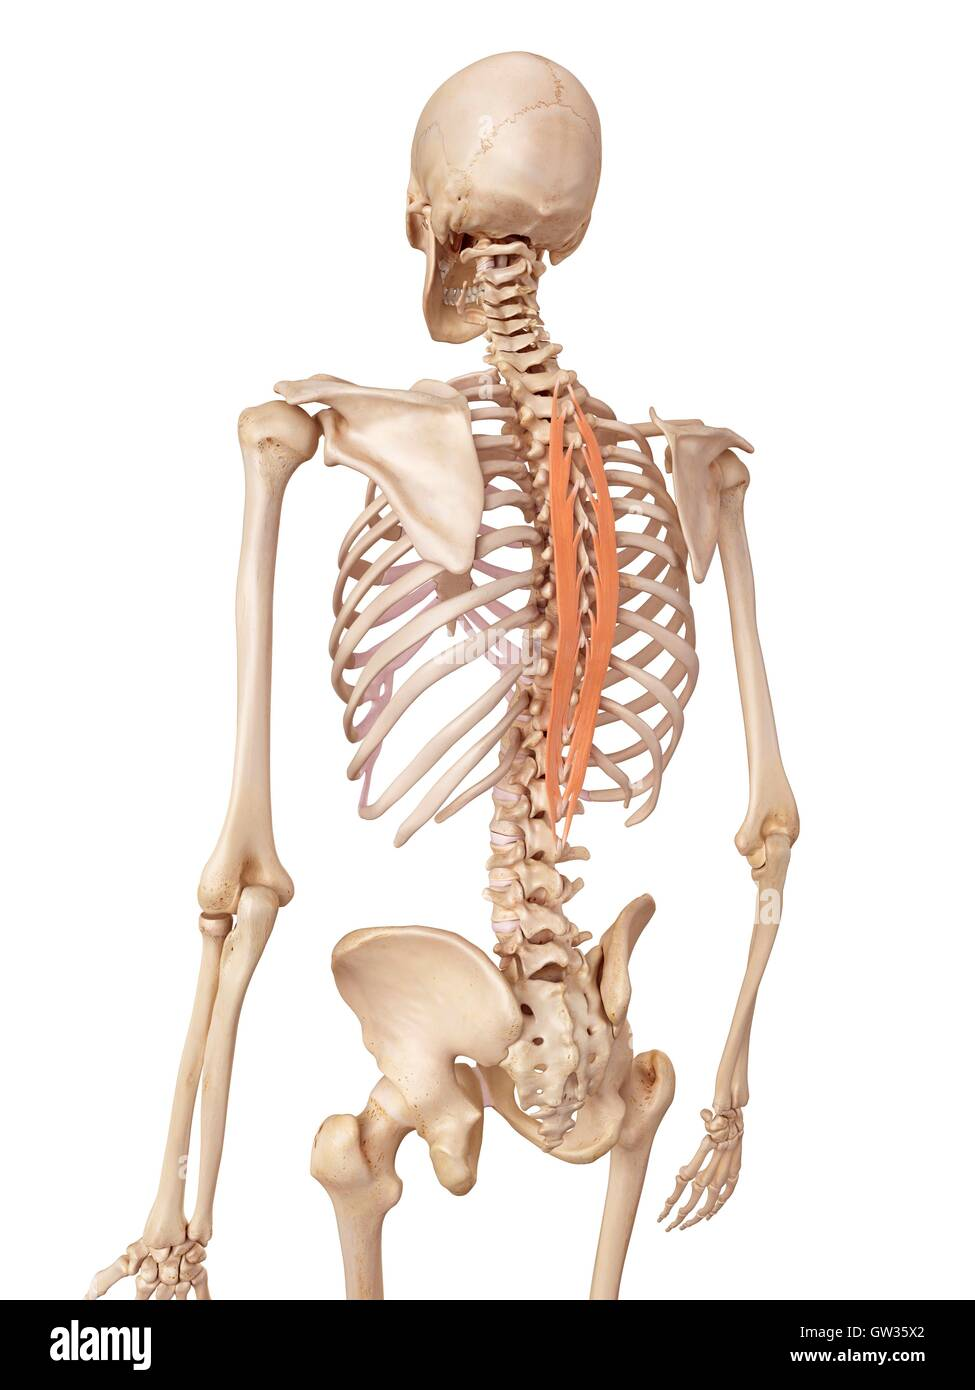 Human Spinal Muscle Illustration Stock Photo 118699114 Alamy